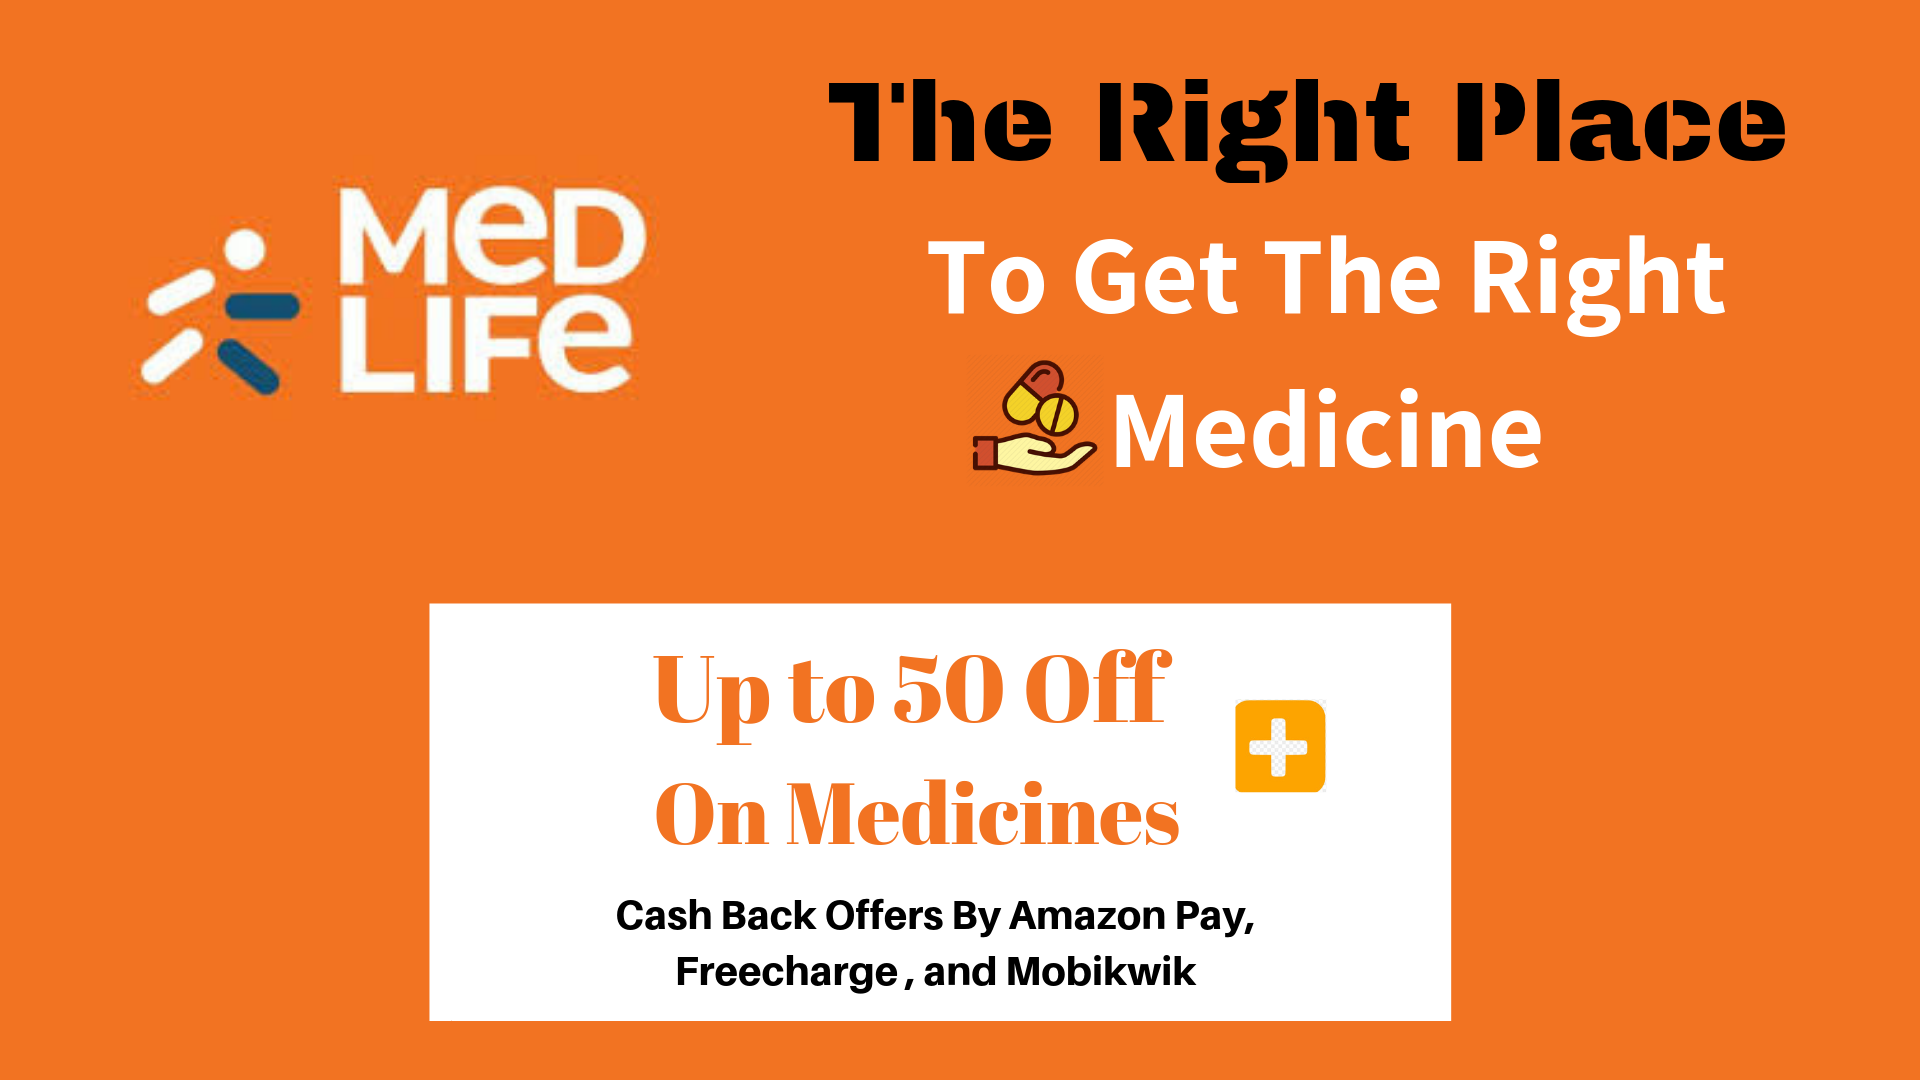 Medlife Wallet Offers - Flat 30% Off + Cashback via Amazon